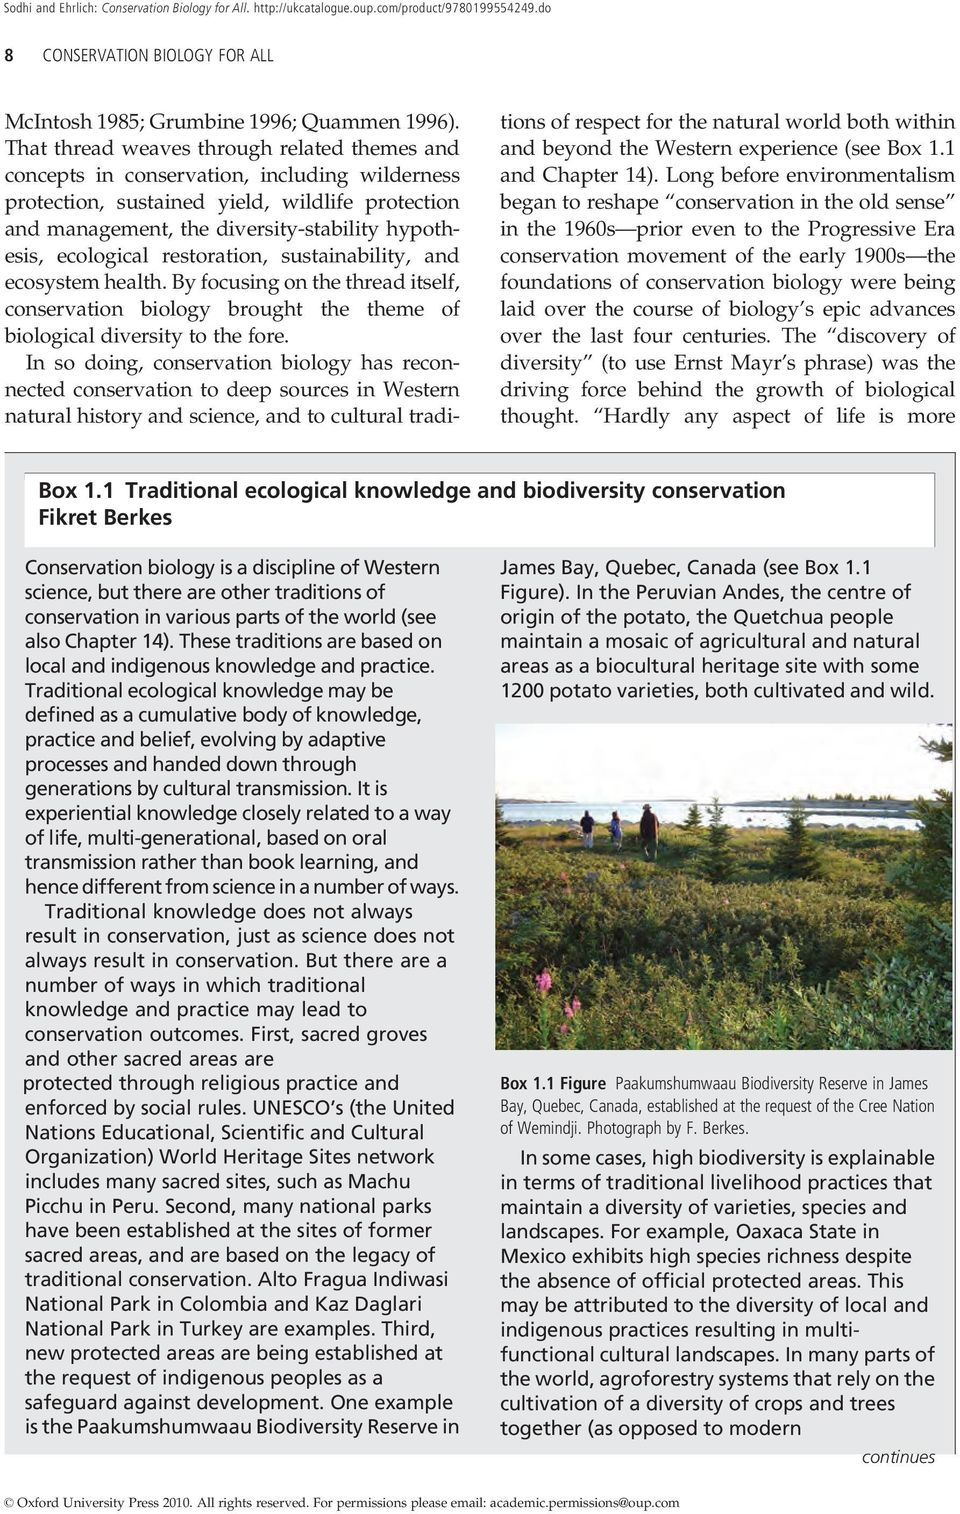 ecological restoration, sustainability, and ecosystem health. By focusing on the thread itself, conservation biology brought the theme of biological diversity to the fore.